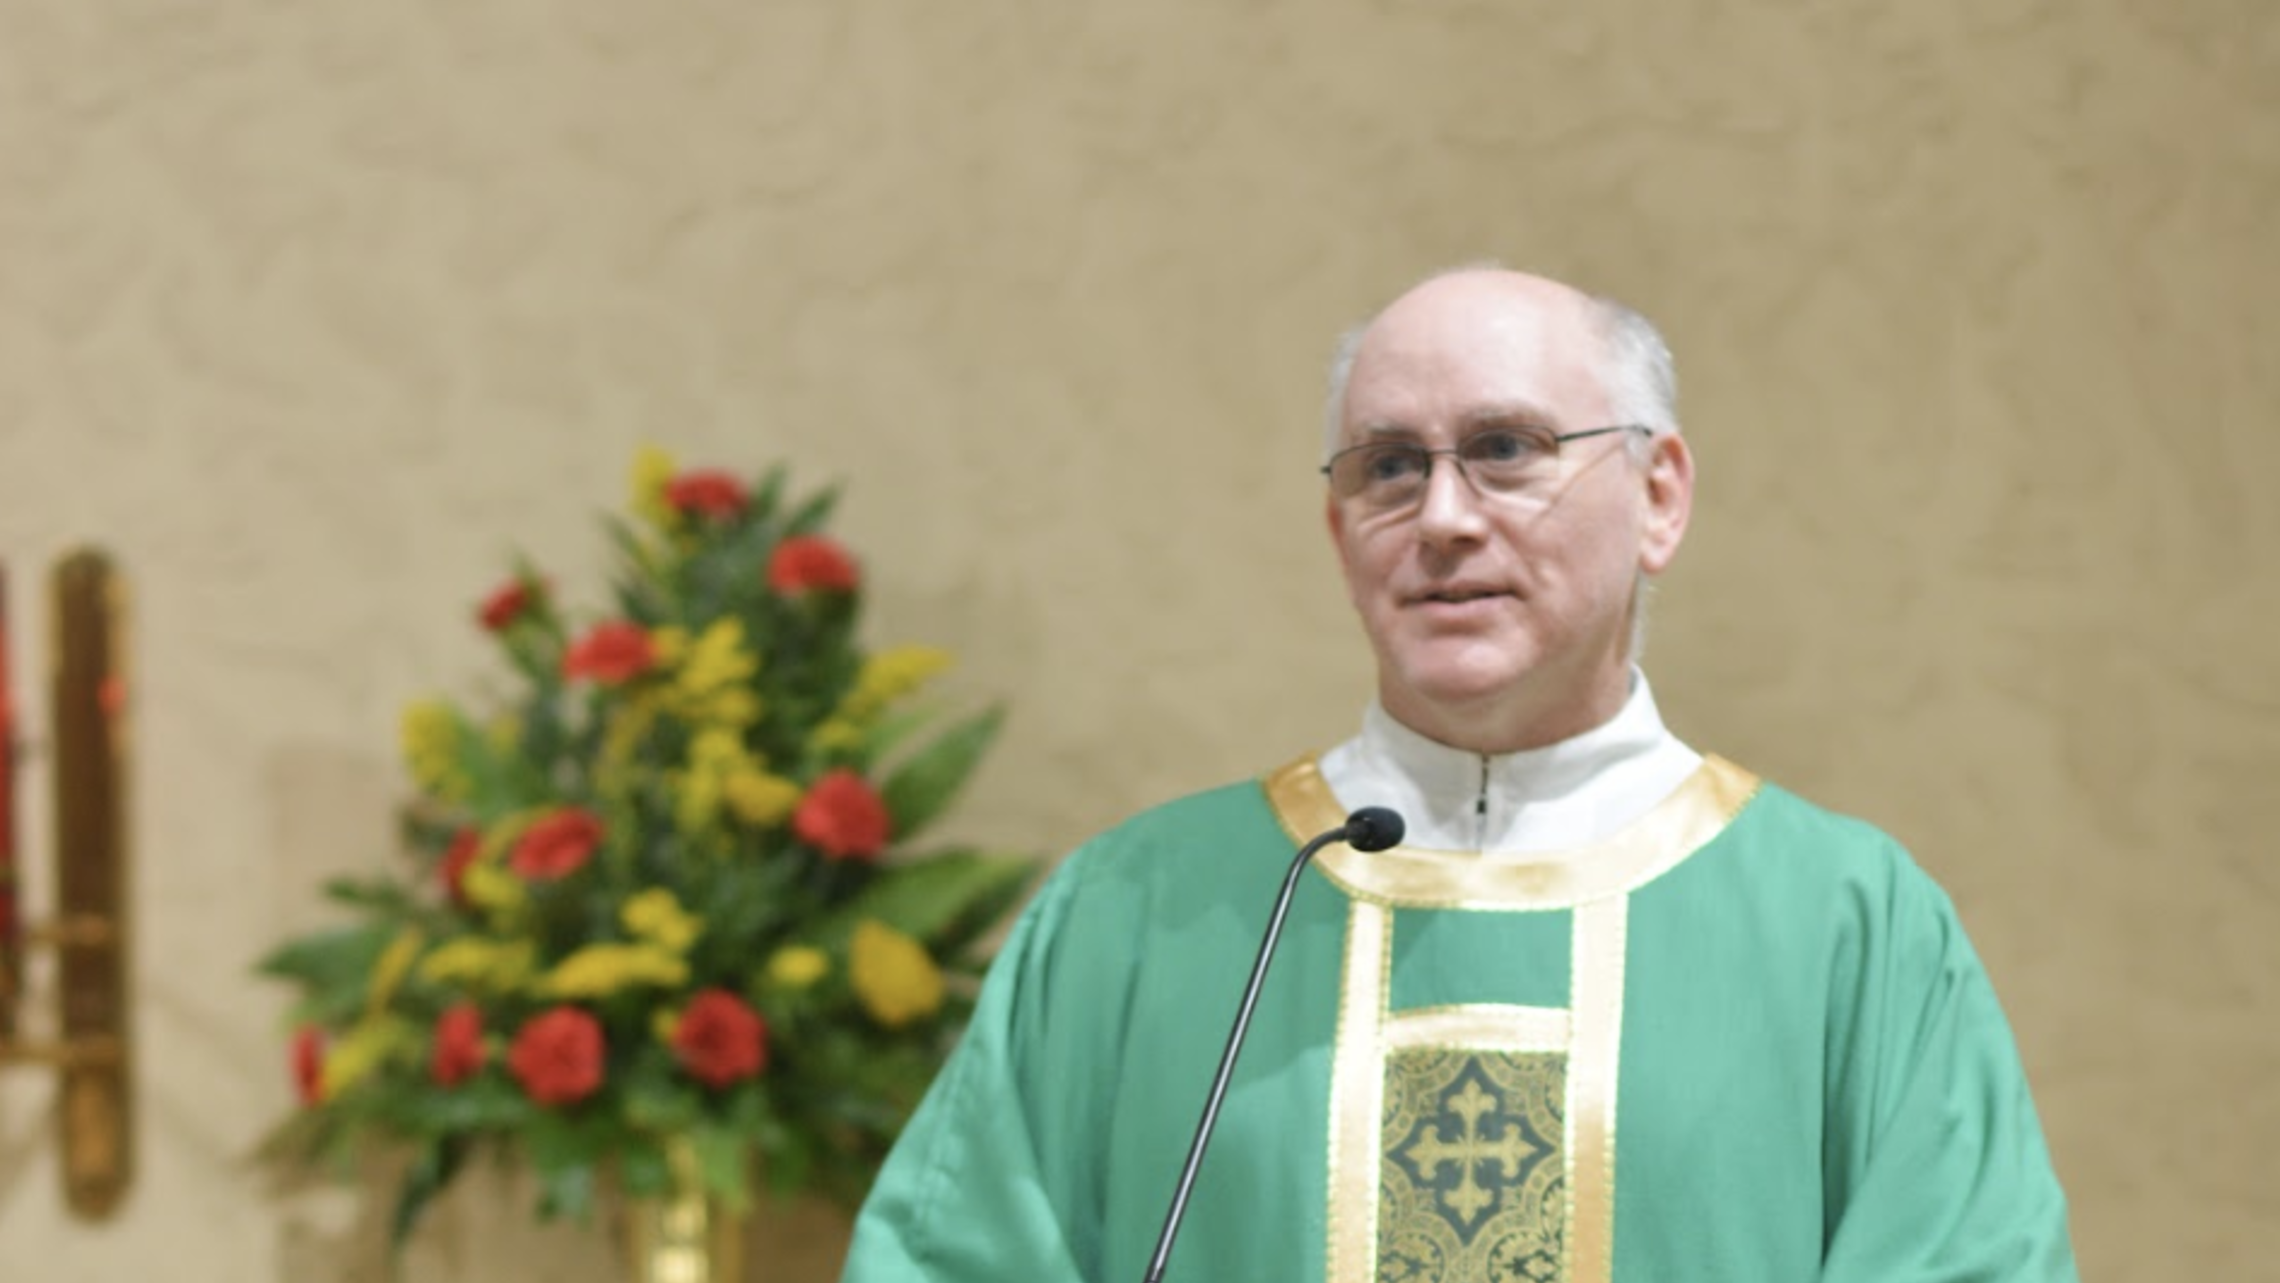 Deacon Tim Papa Homily